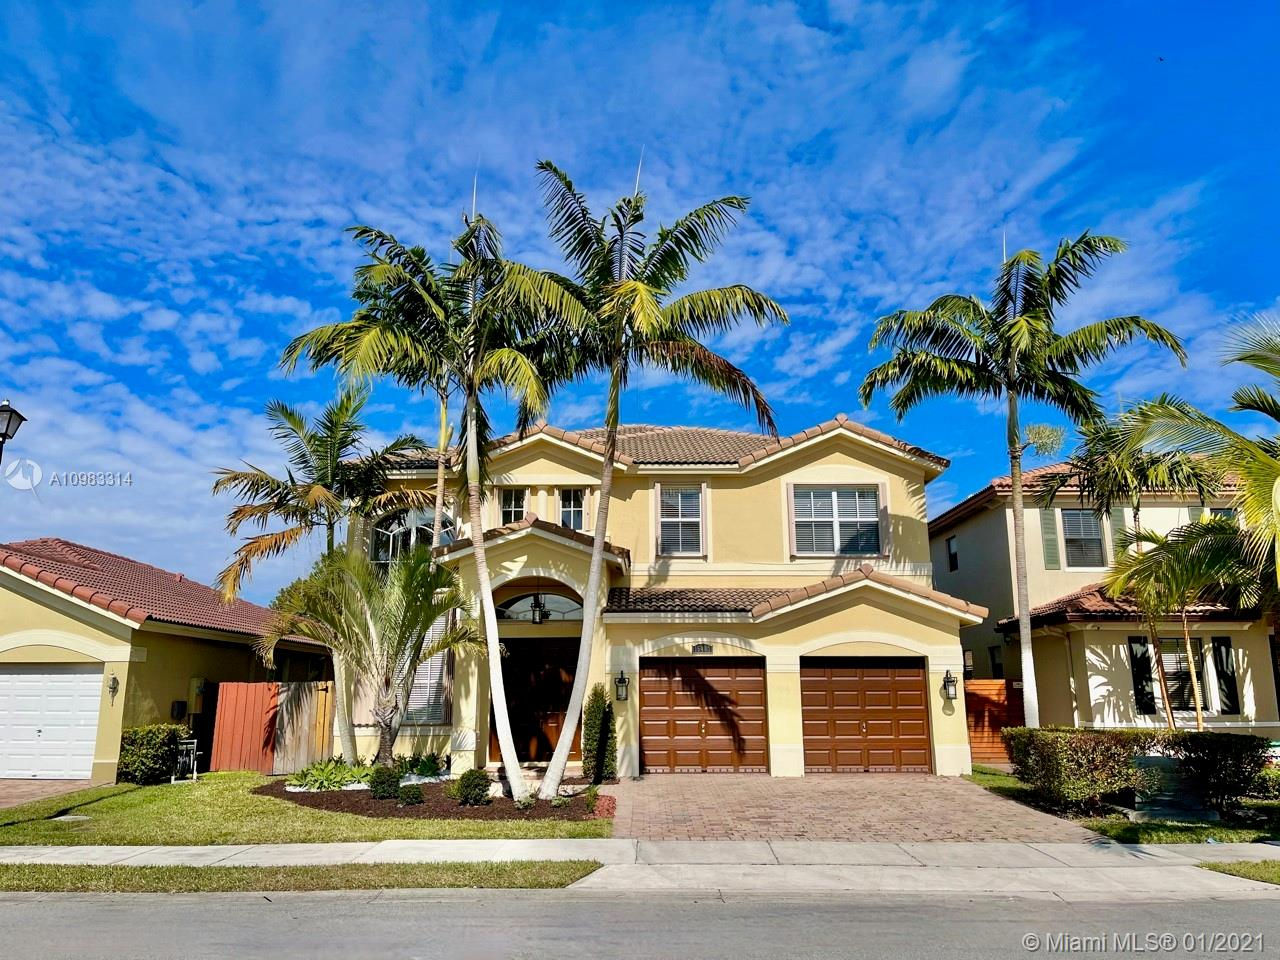 Details for 15403 118th Ter, Miami, FL 33196